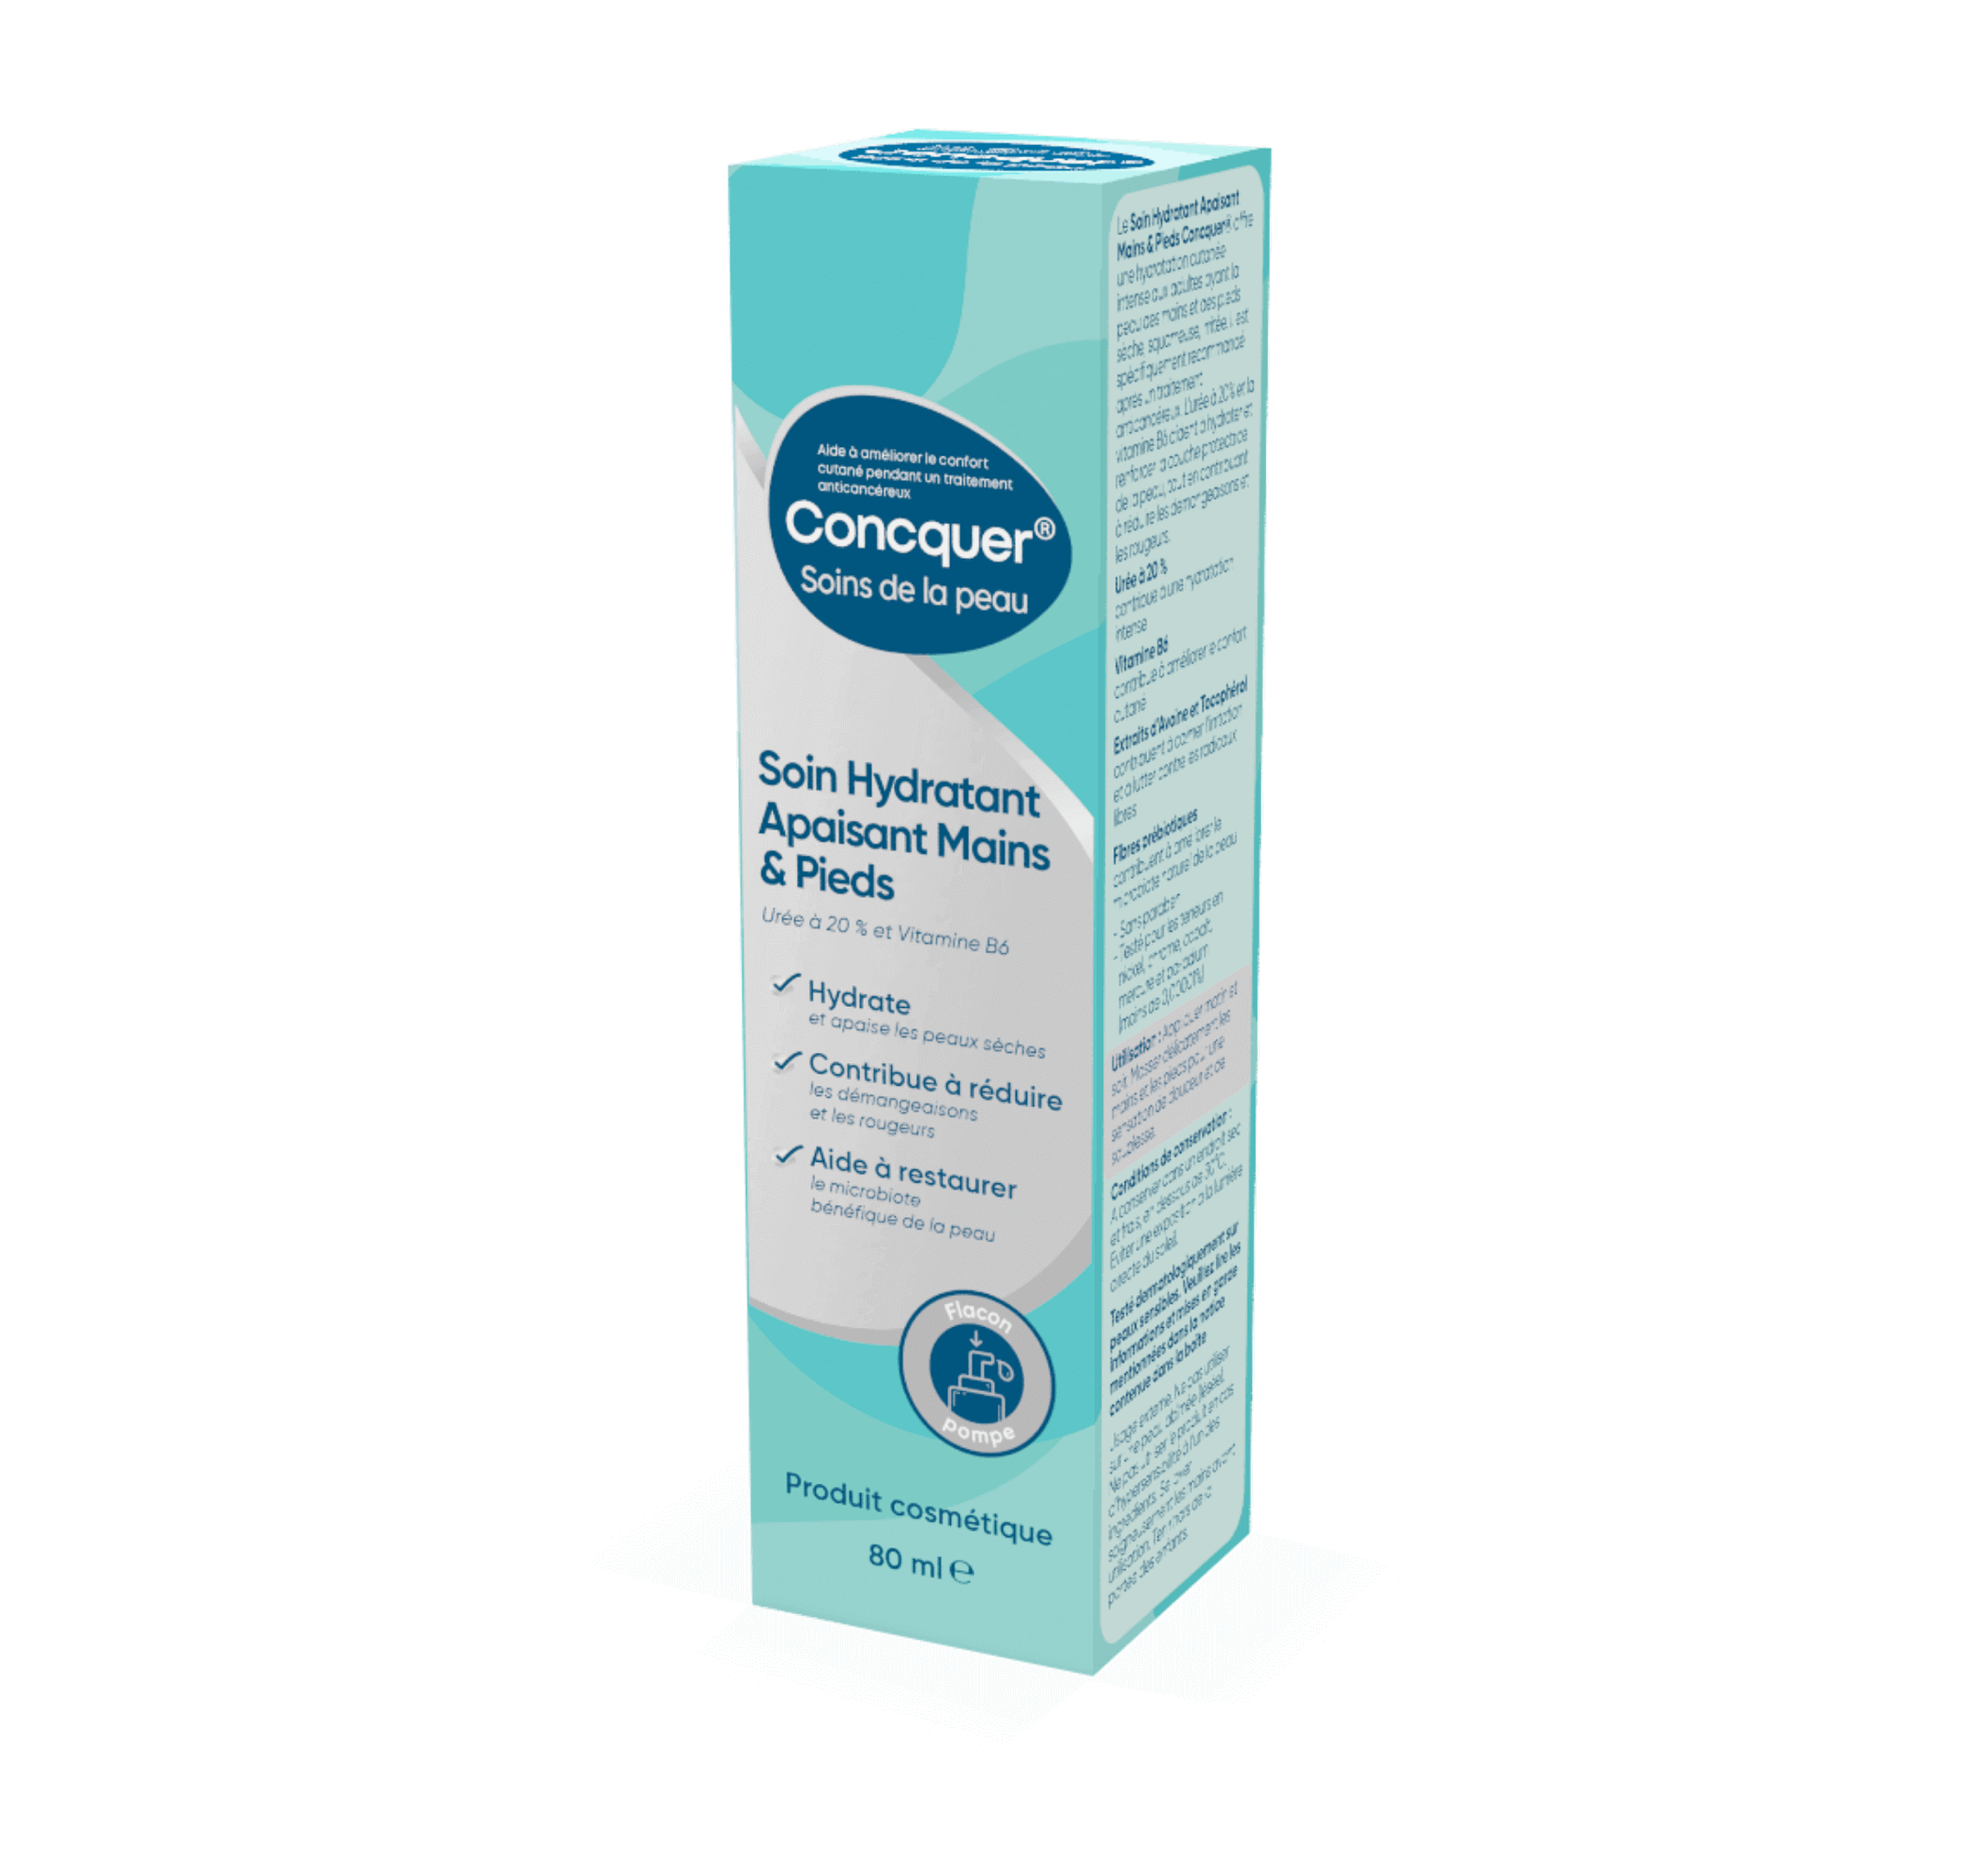 Soin Hydratant Apaisant Mains & Pieds